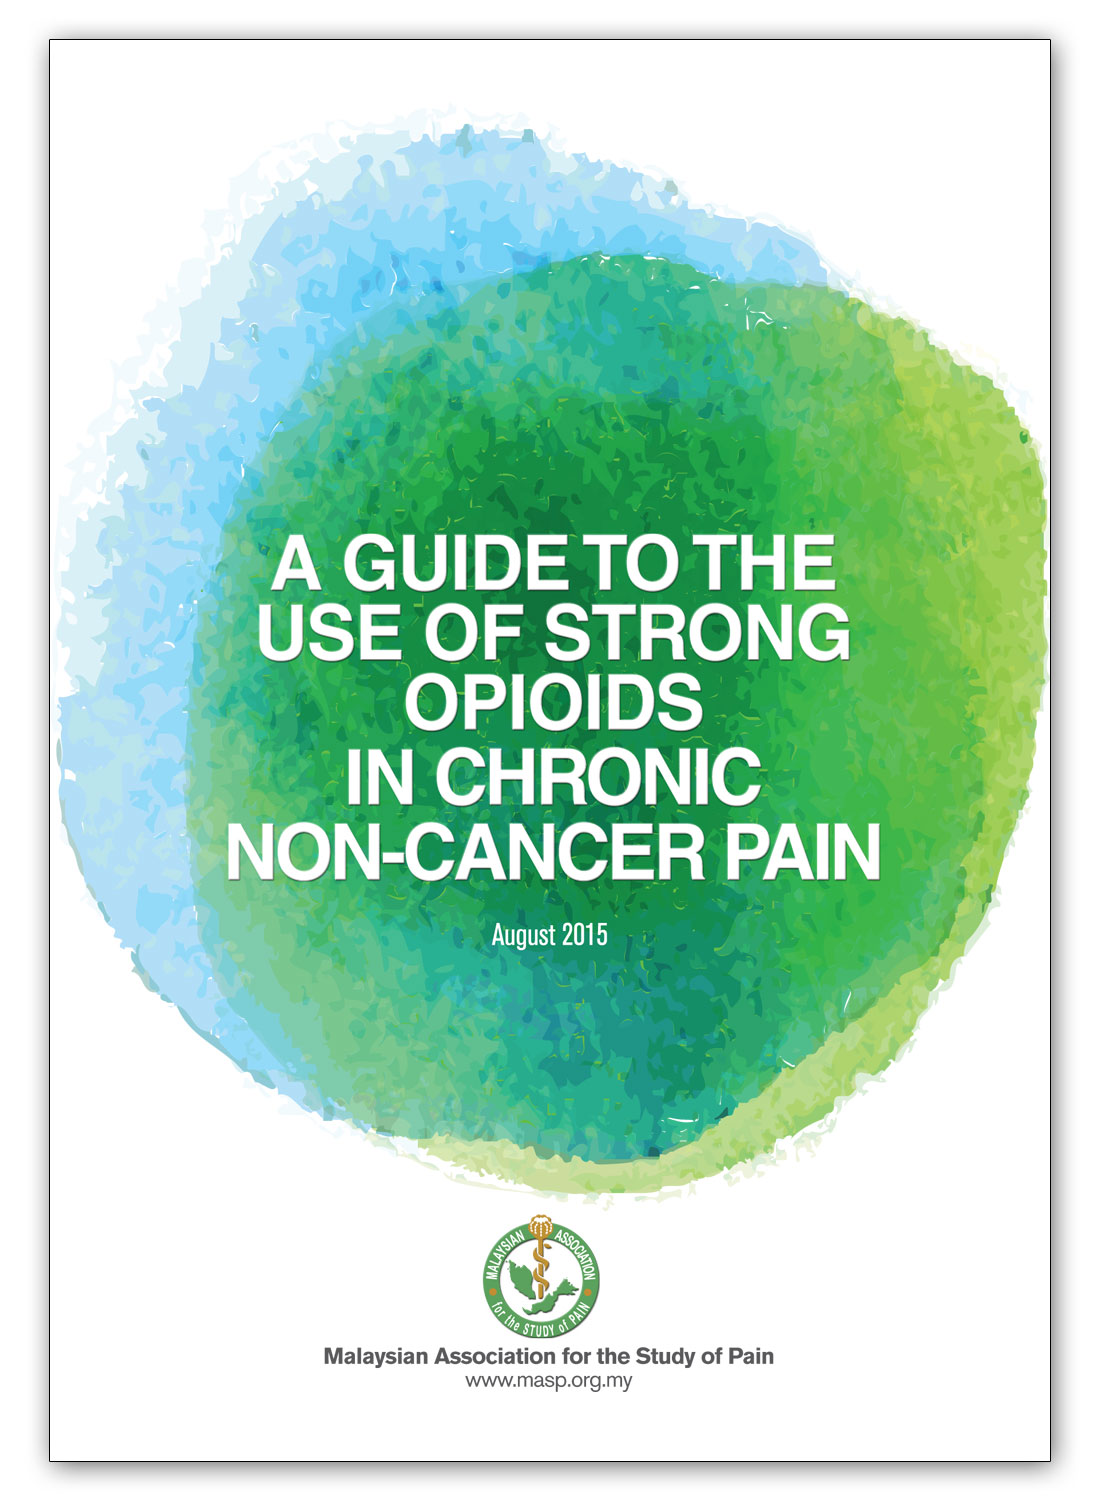 A Guide to the Use of Strong OPIOIDS in Chronic Non-Cancer PAIN